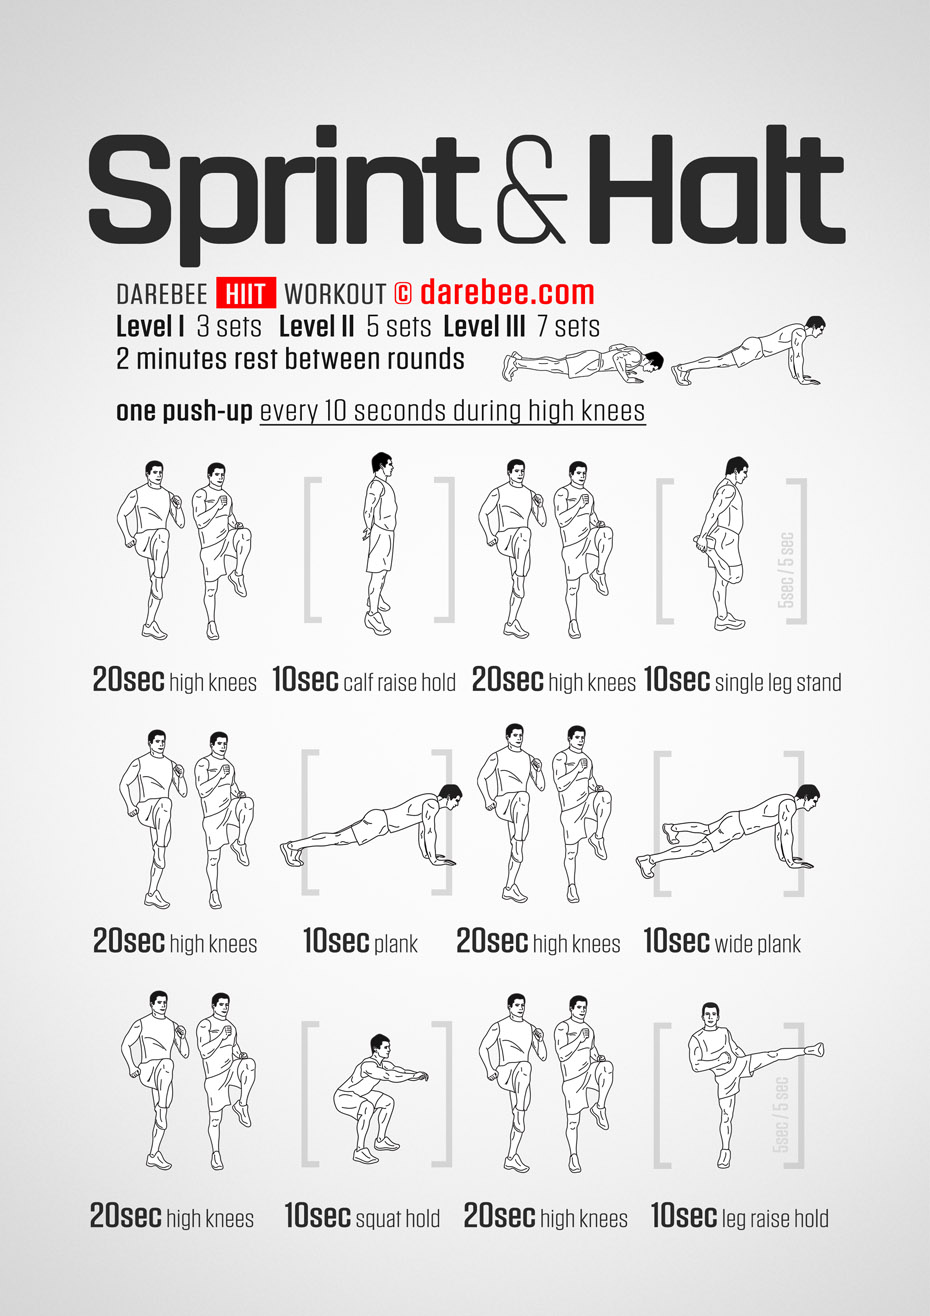 Sprinting workouts